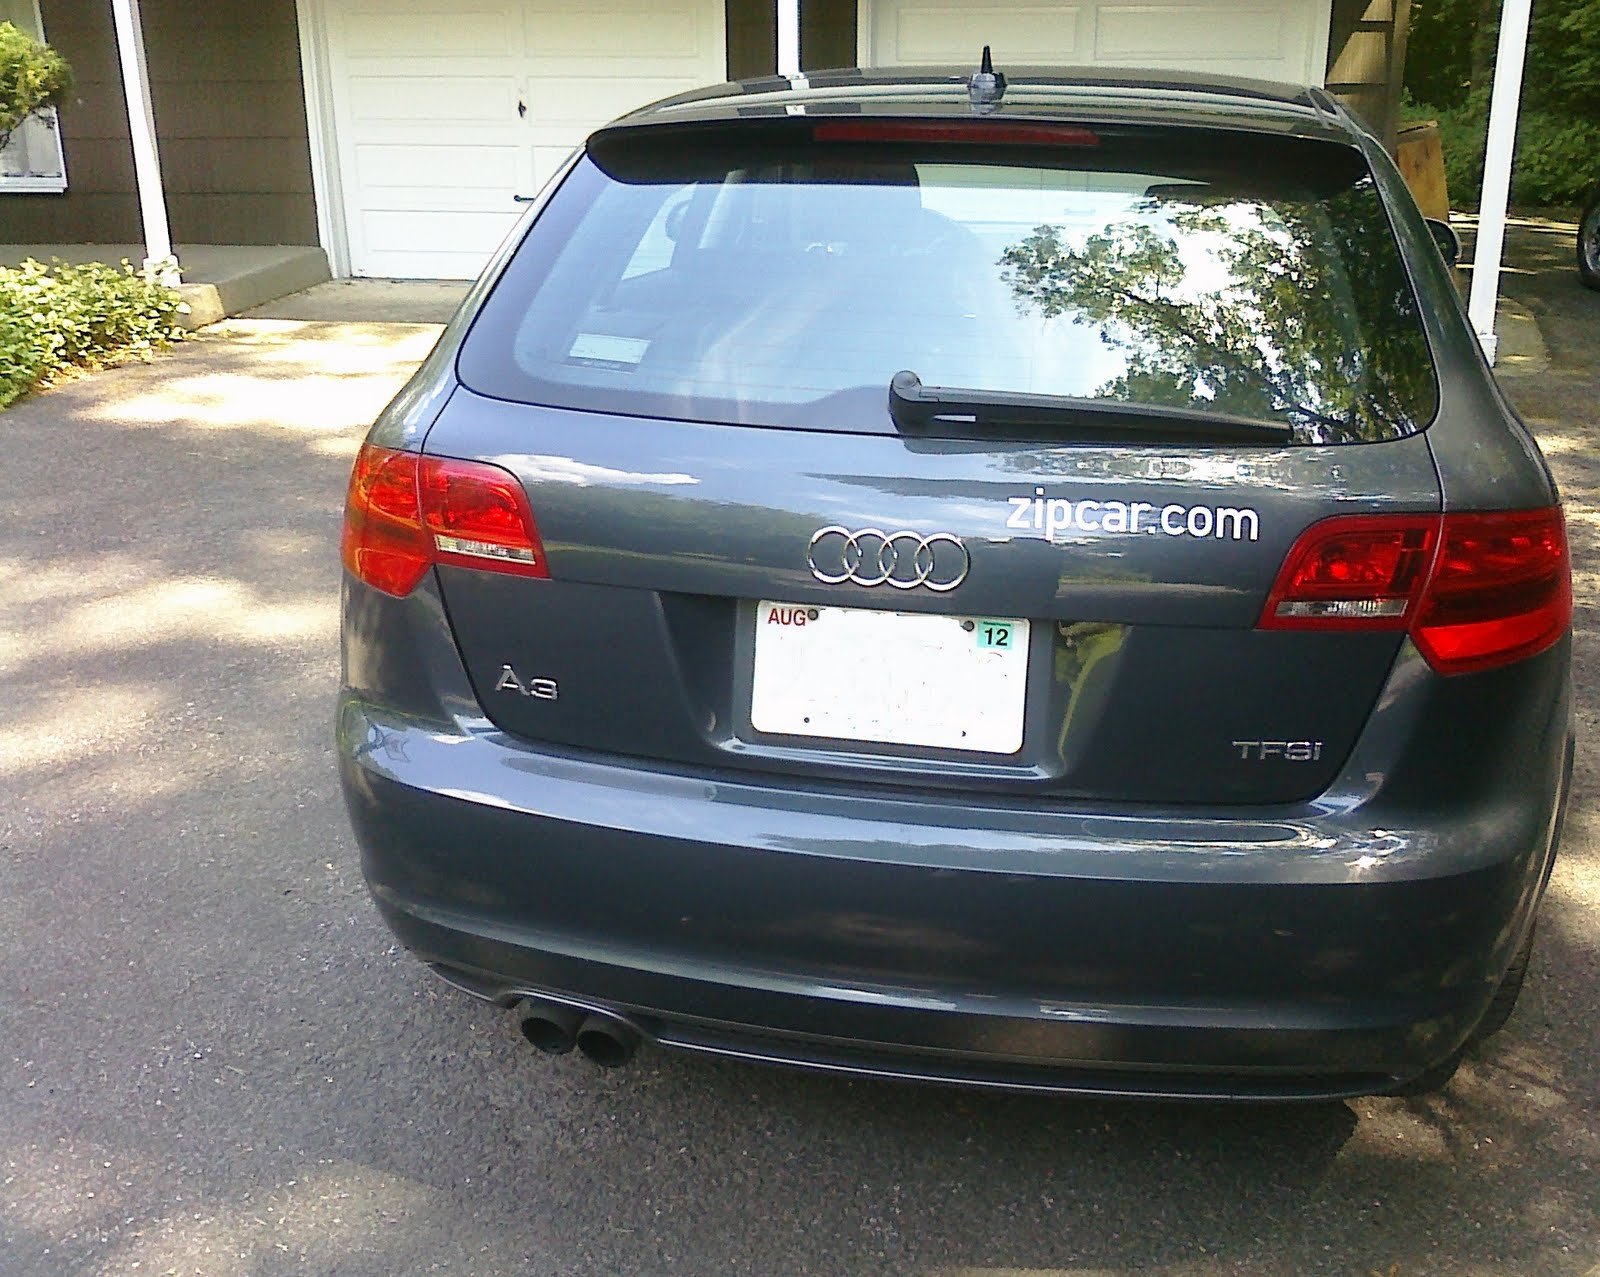 You Are What You Drive - A Car Blog: I Zipcar...and the Audi A3